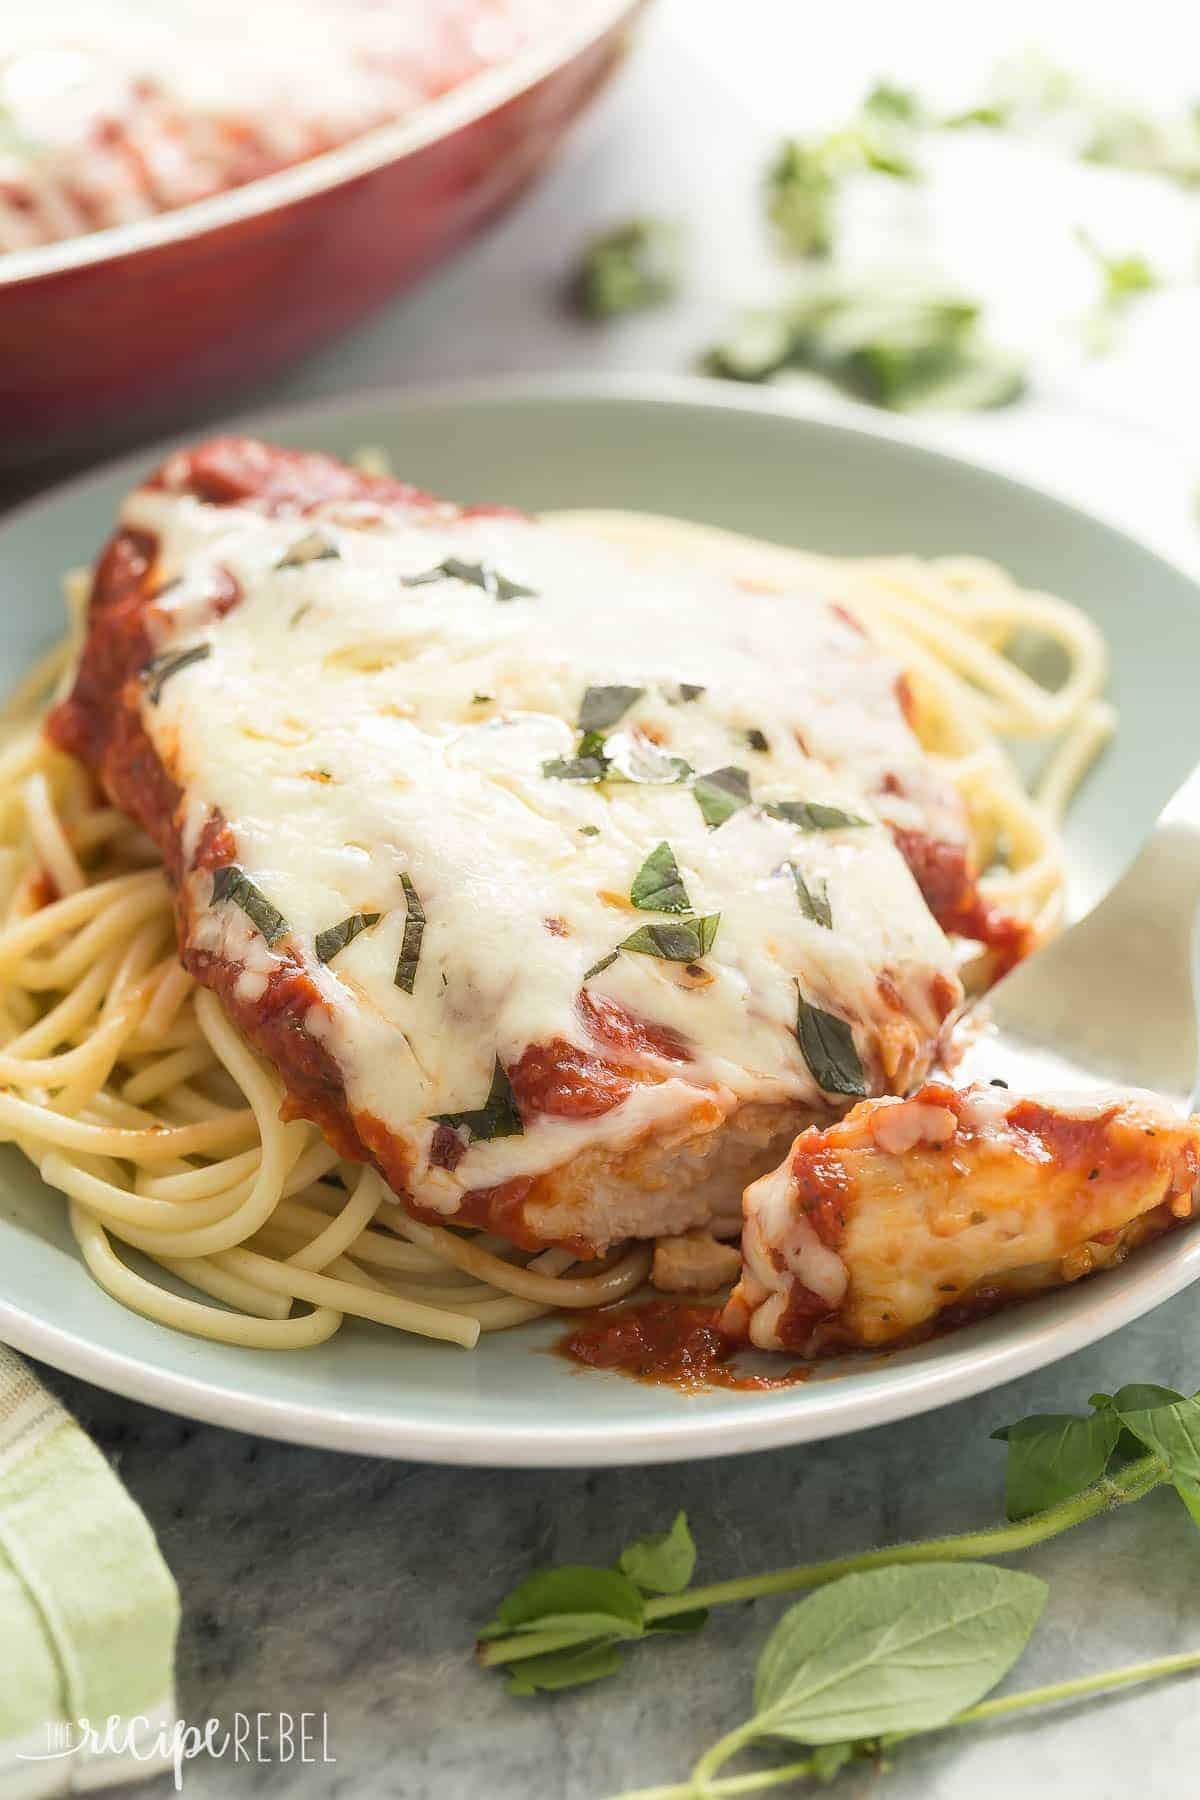 This Skillet Chicken Parmesan is made healthier with a homemade tomato sauce, skinless chicken breasts and no breading or frying (which means it's also gluten free)! It's a 30 minute meal that everyone will love!